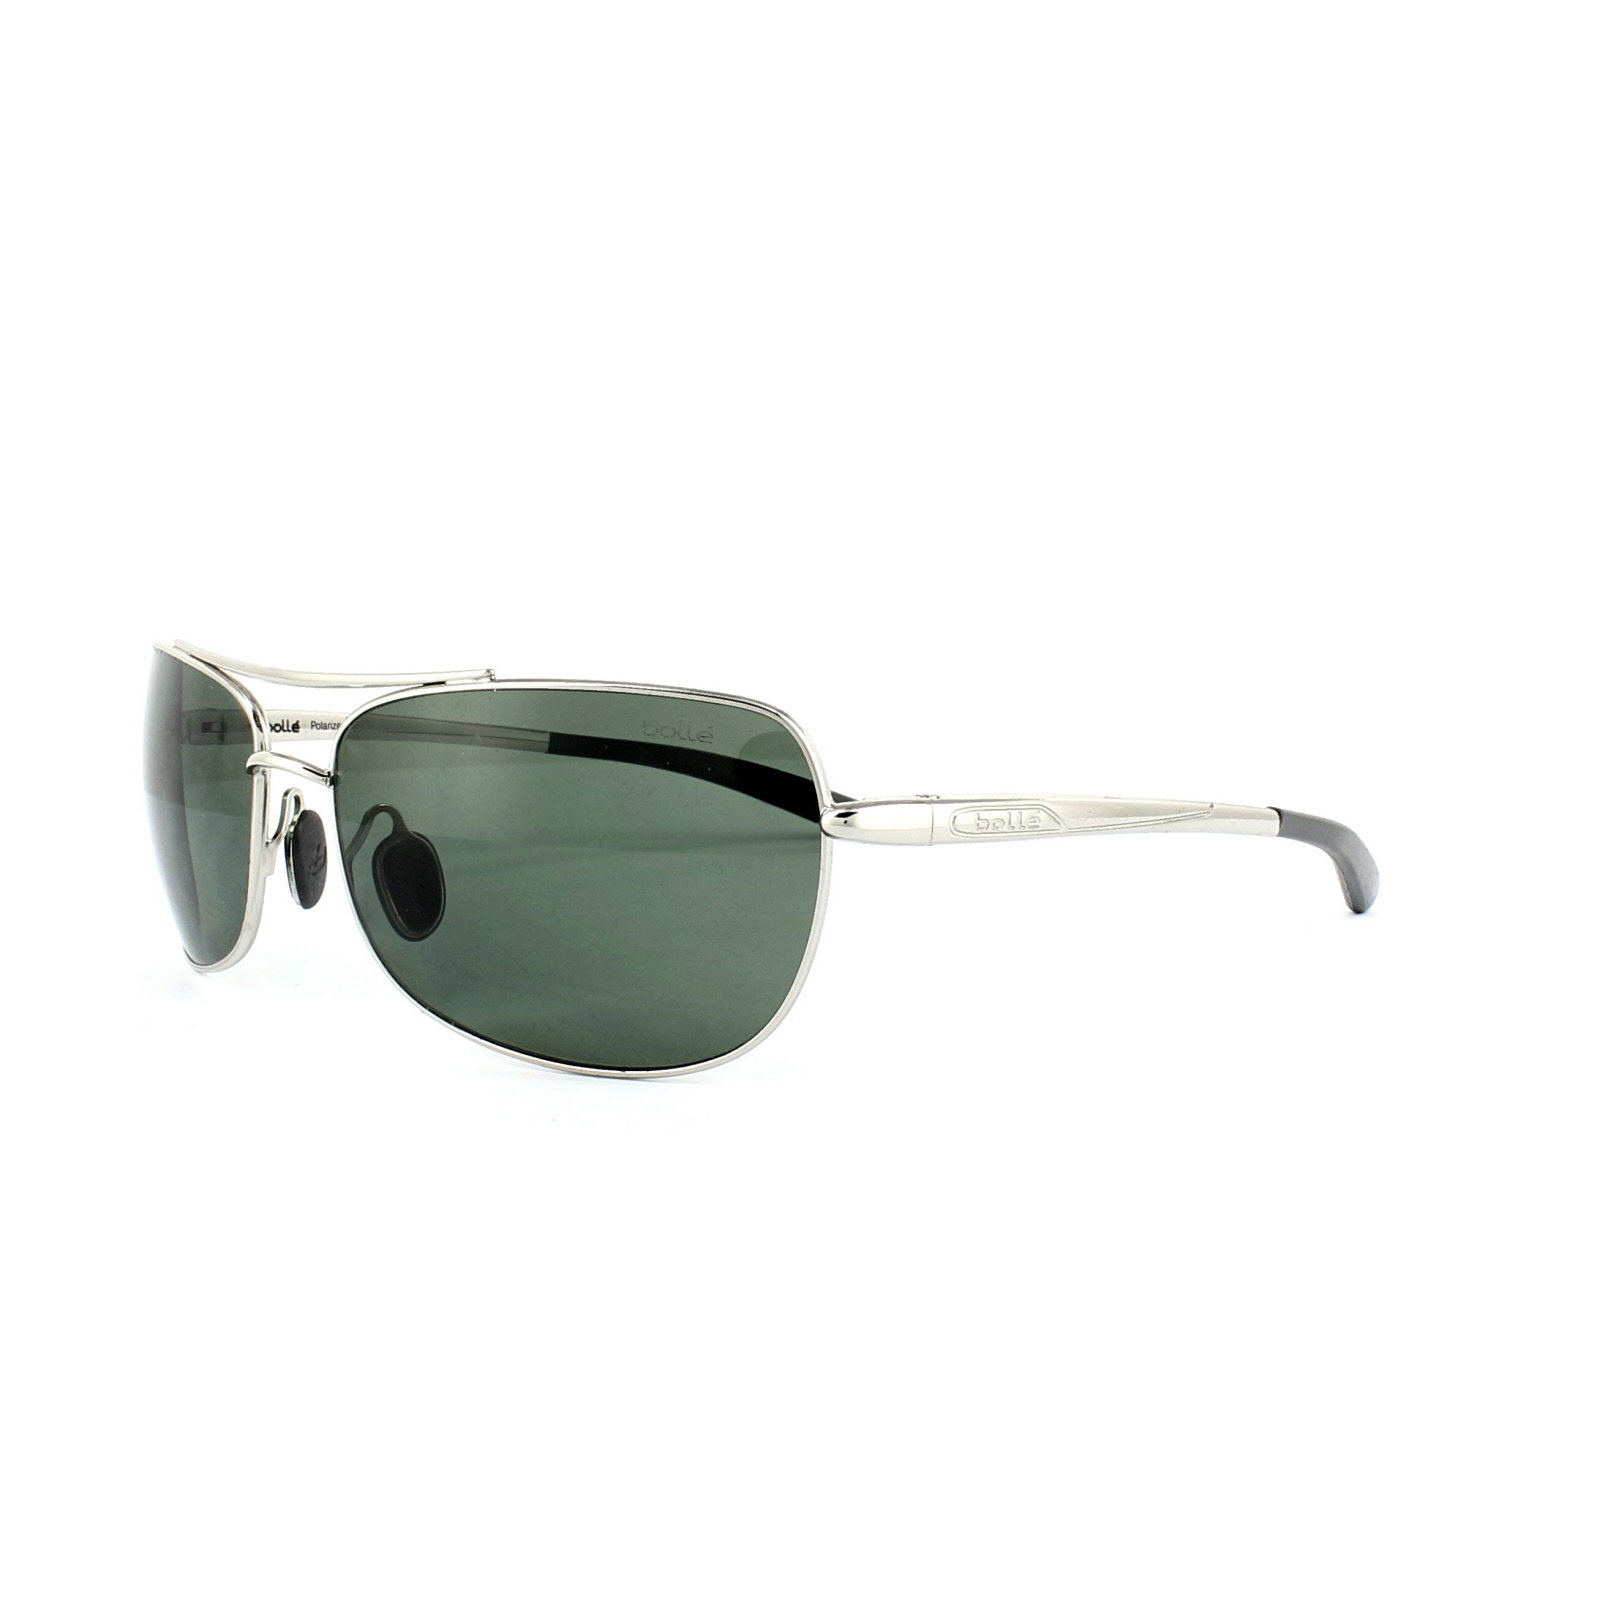 Rimless Glasses Brisbane : Bolle Sunglasses Quindaro 11576 Shiny Silver Axis Grey ...